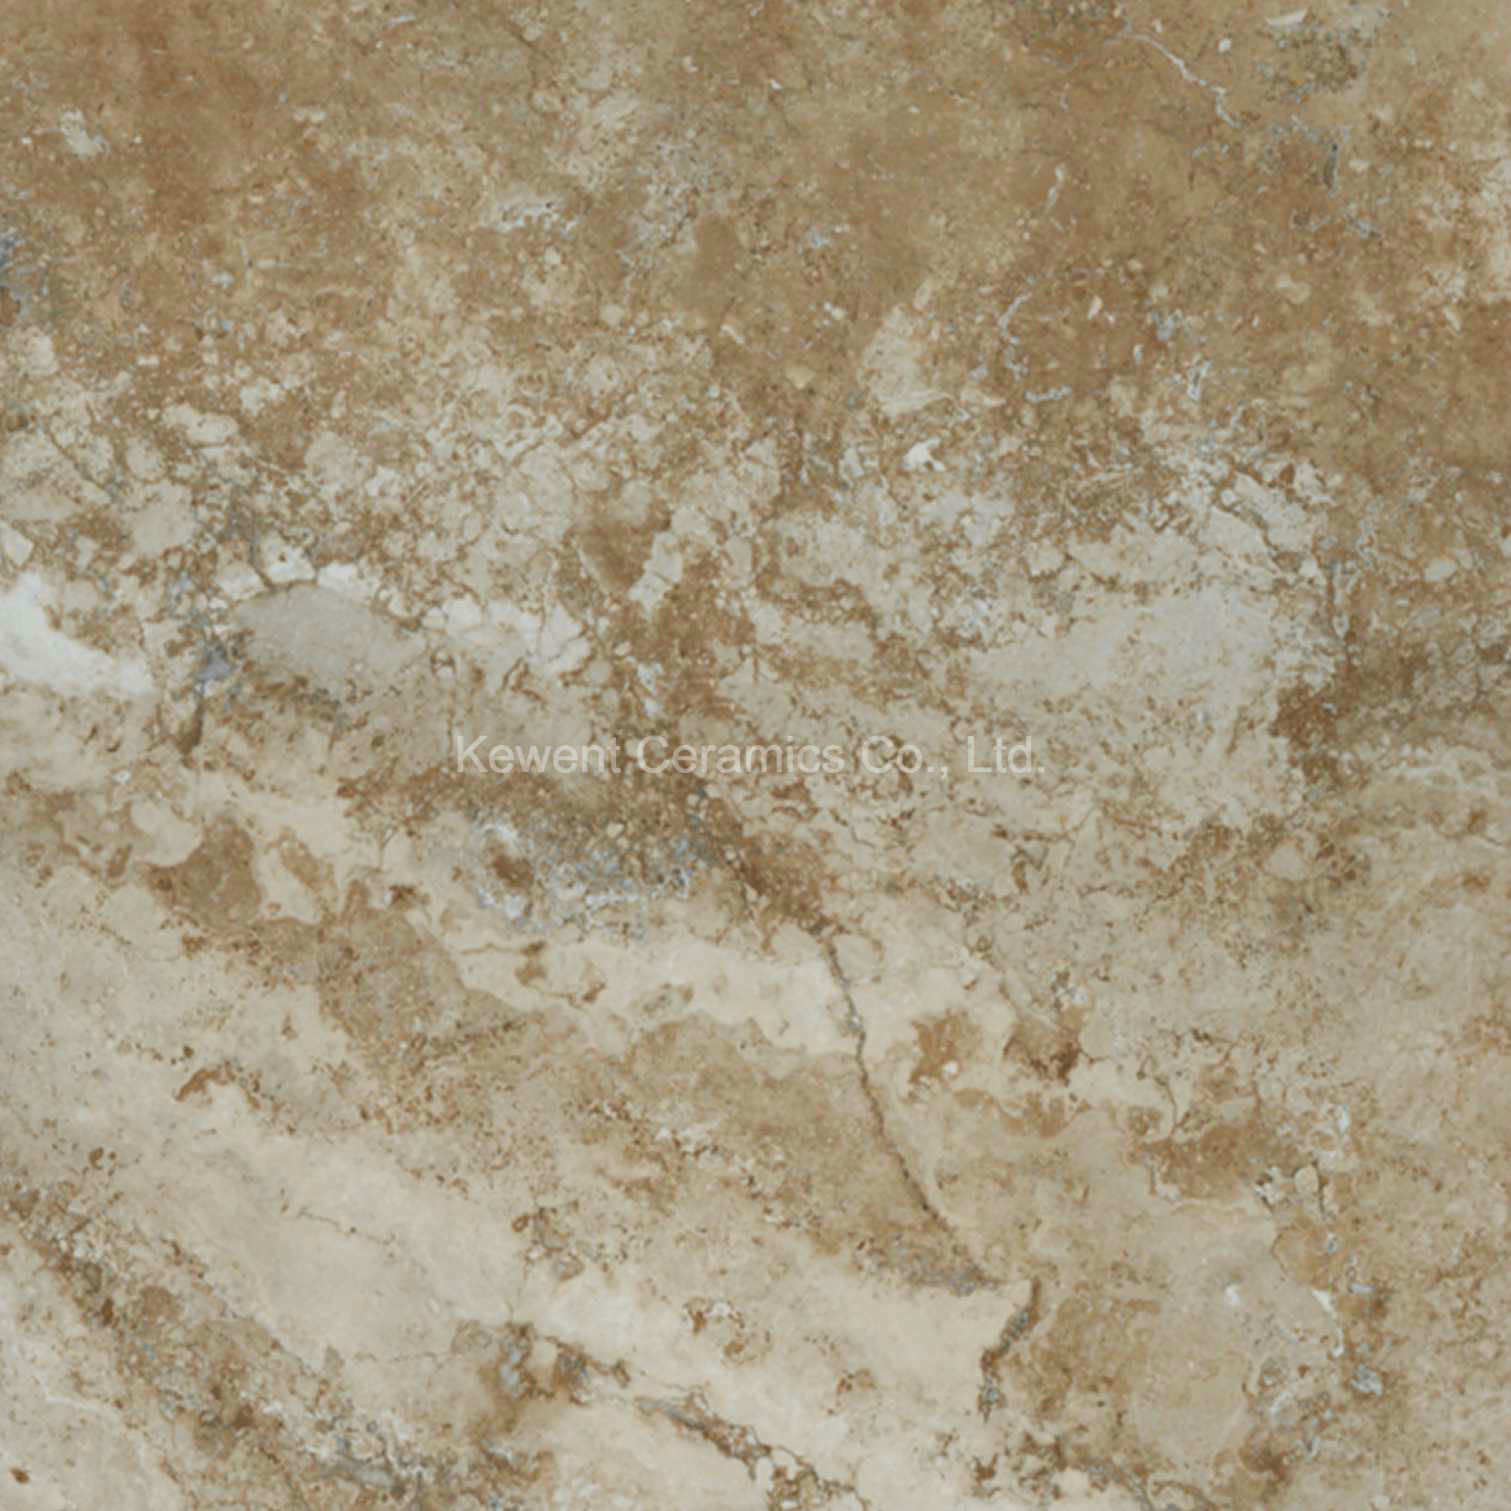 Cement Design Rustic Glazed Porcelain Tile for Floor and Wall 600X600mm